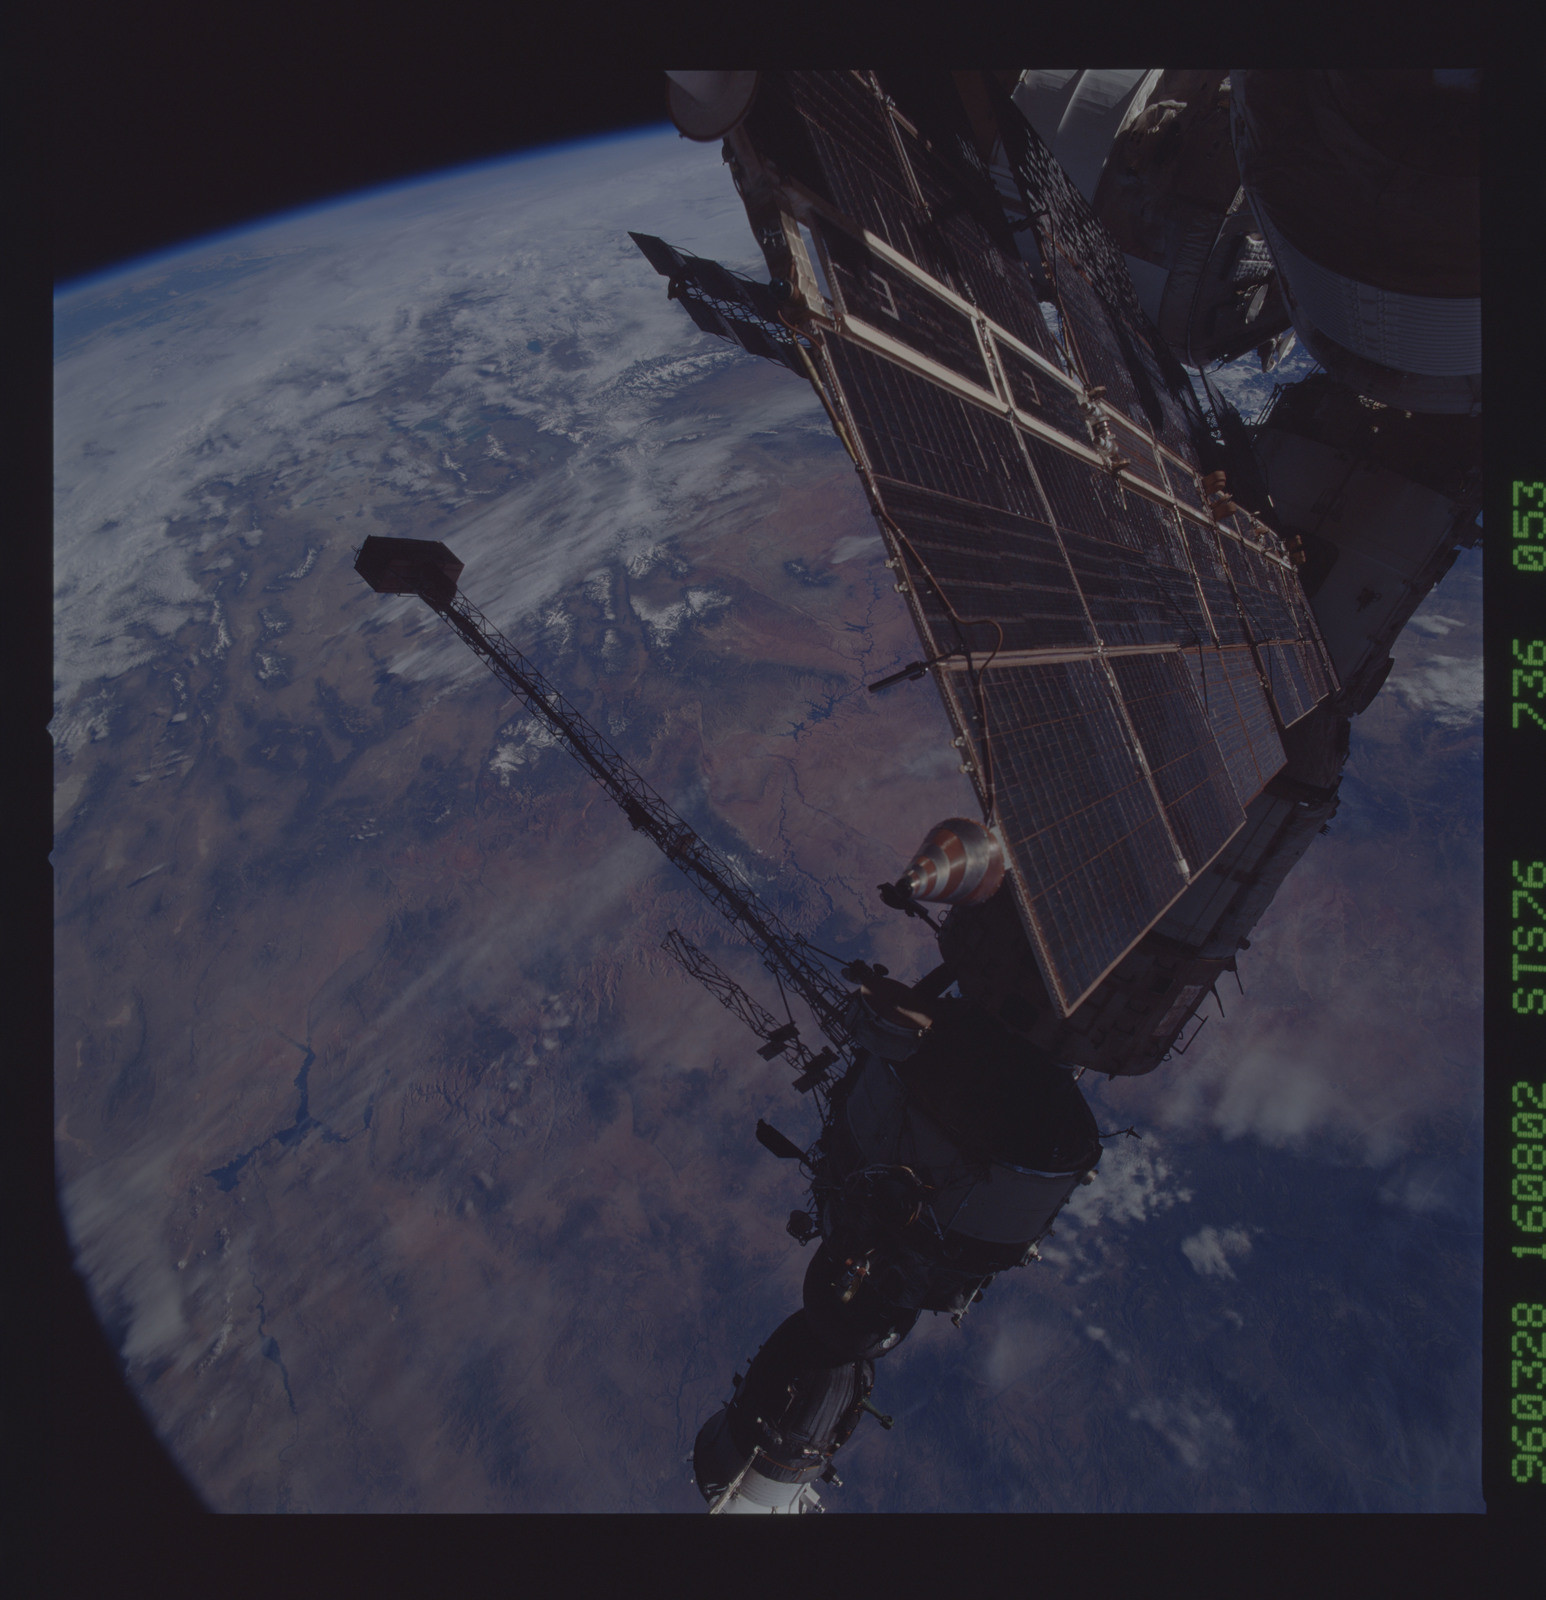 STS076-736-053 - STS-076 - Mir Space Station views taken during STS-76 mission